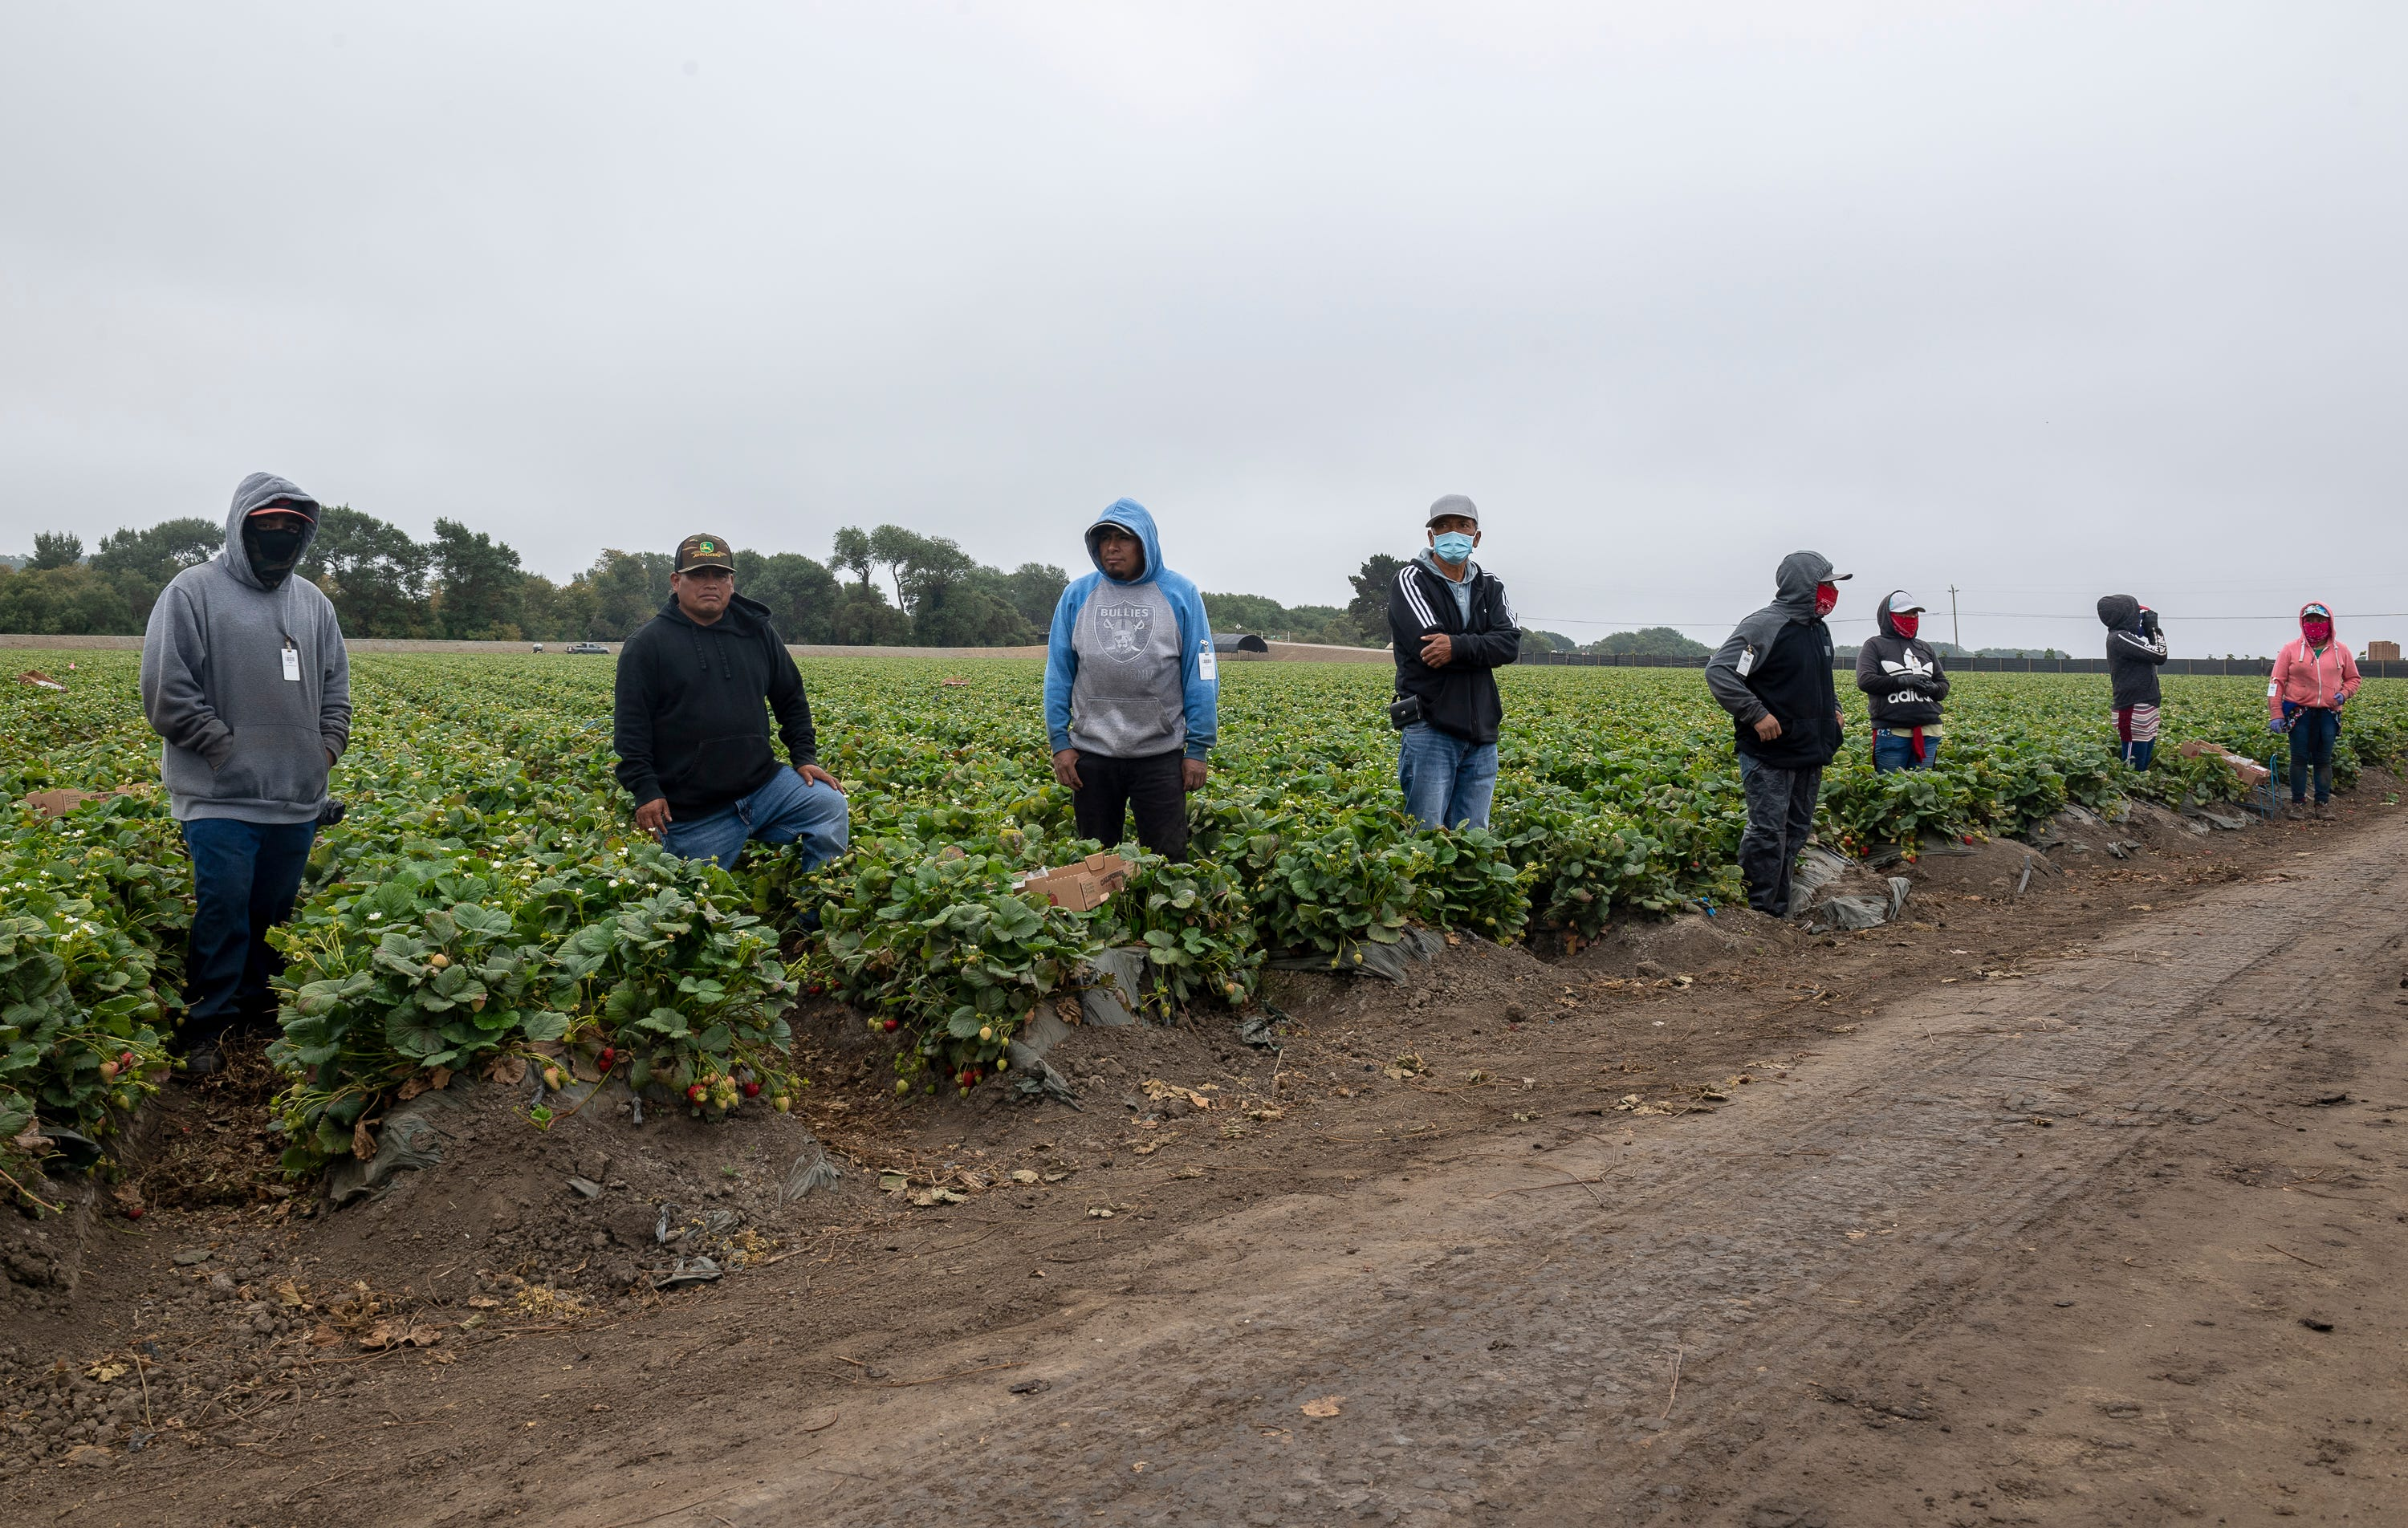 Eight strawberry farmworkers stand apart from one another before their lunch in Watsonville, Calif., on Wednesday, July 29, 2020.